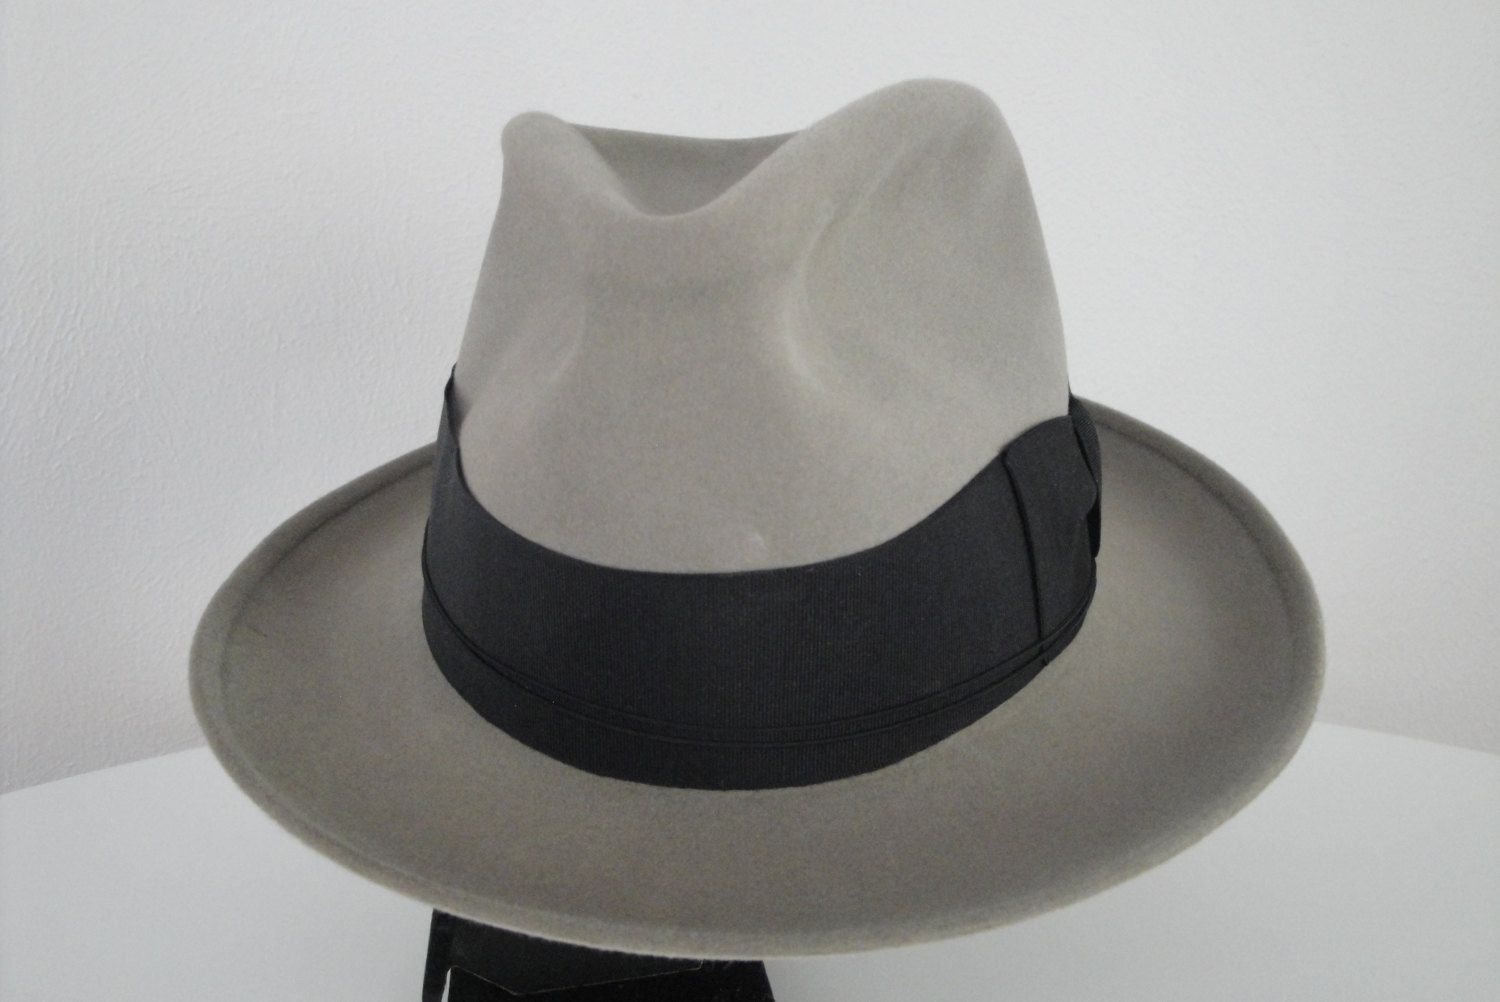 Vintage 1940s 40s or 1930s 30s Mens Hat Borsalino Fedora Made in Italy WWII  Gangster.  165.00 750ac4d6c1b9